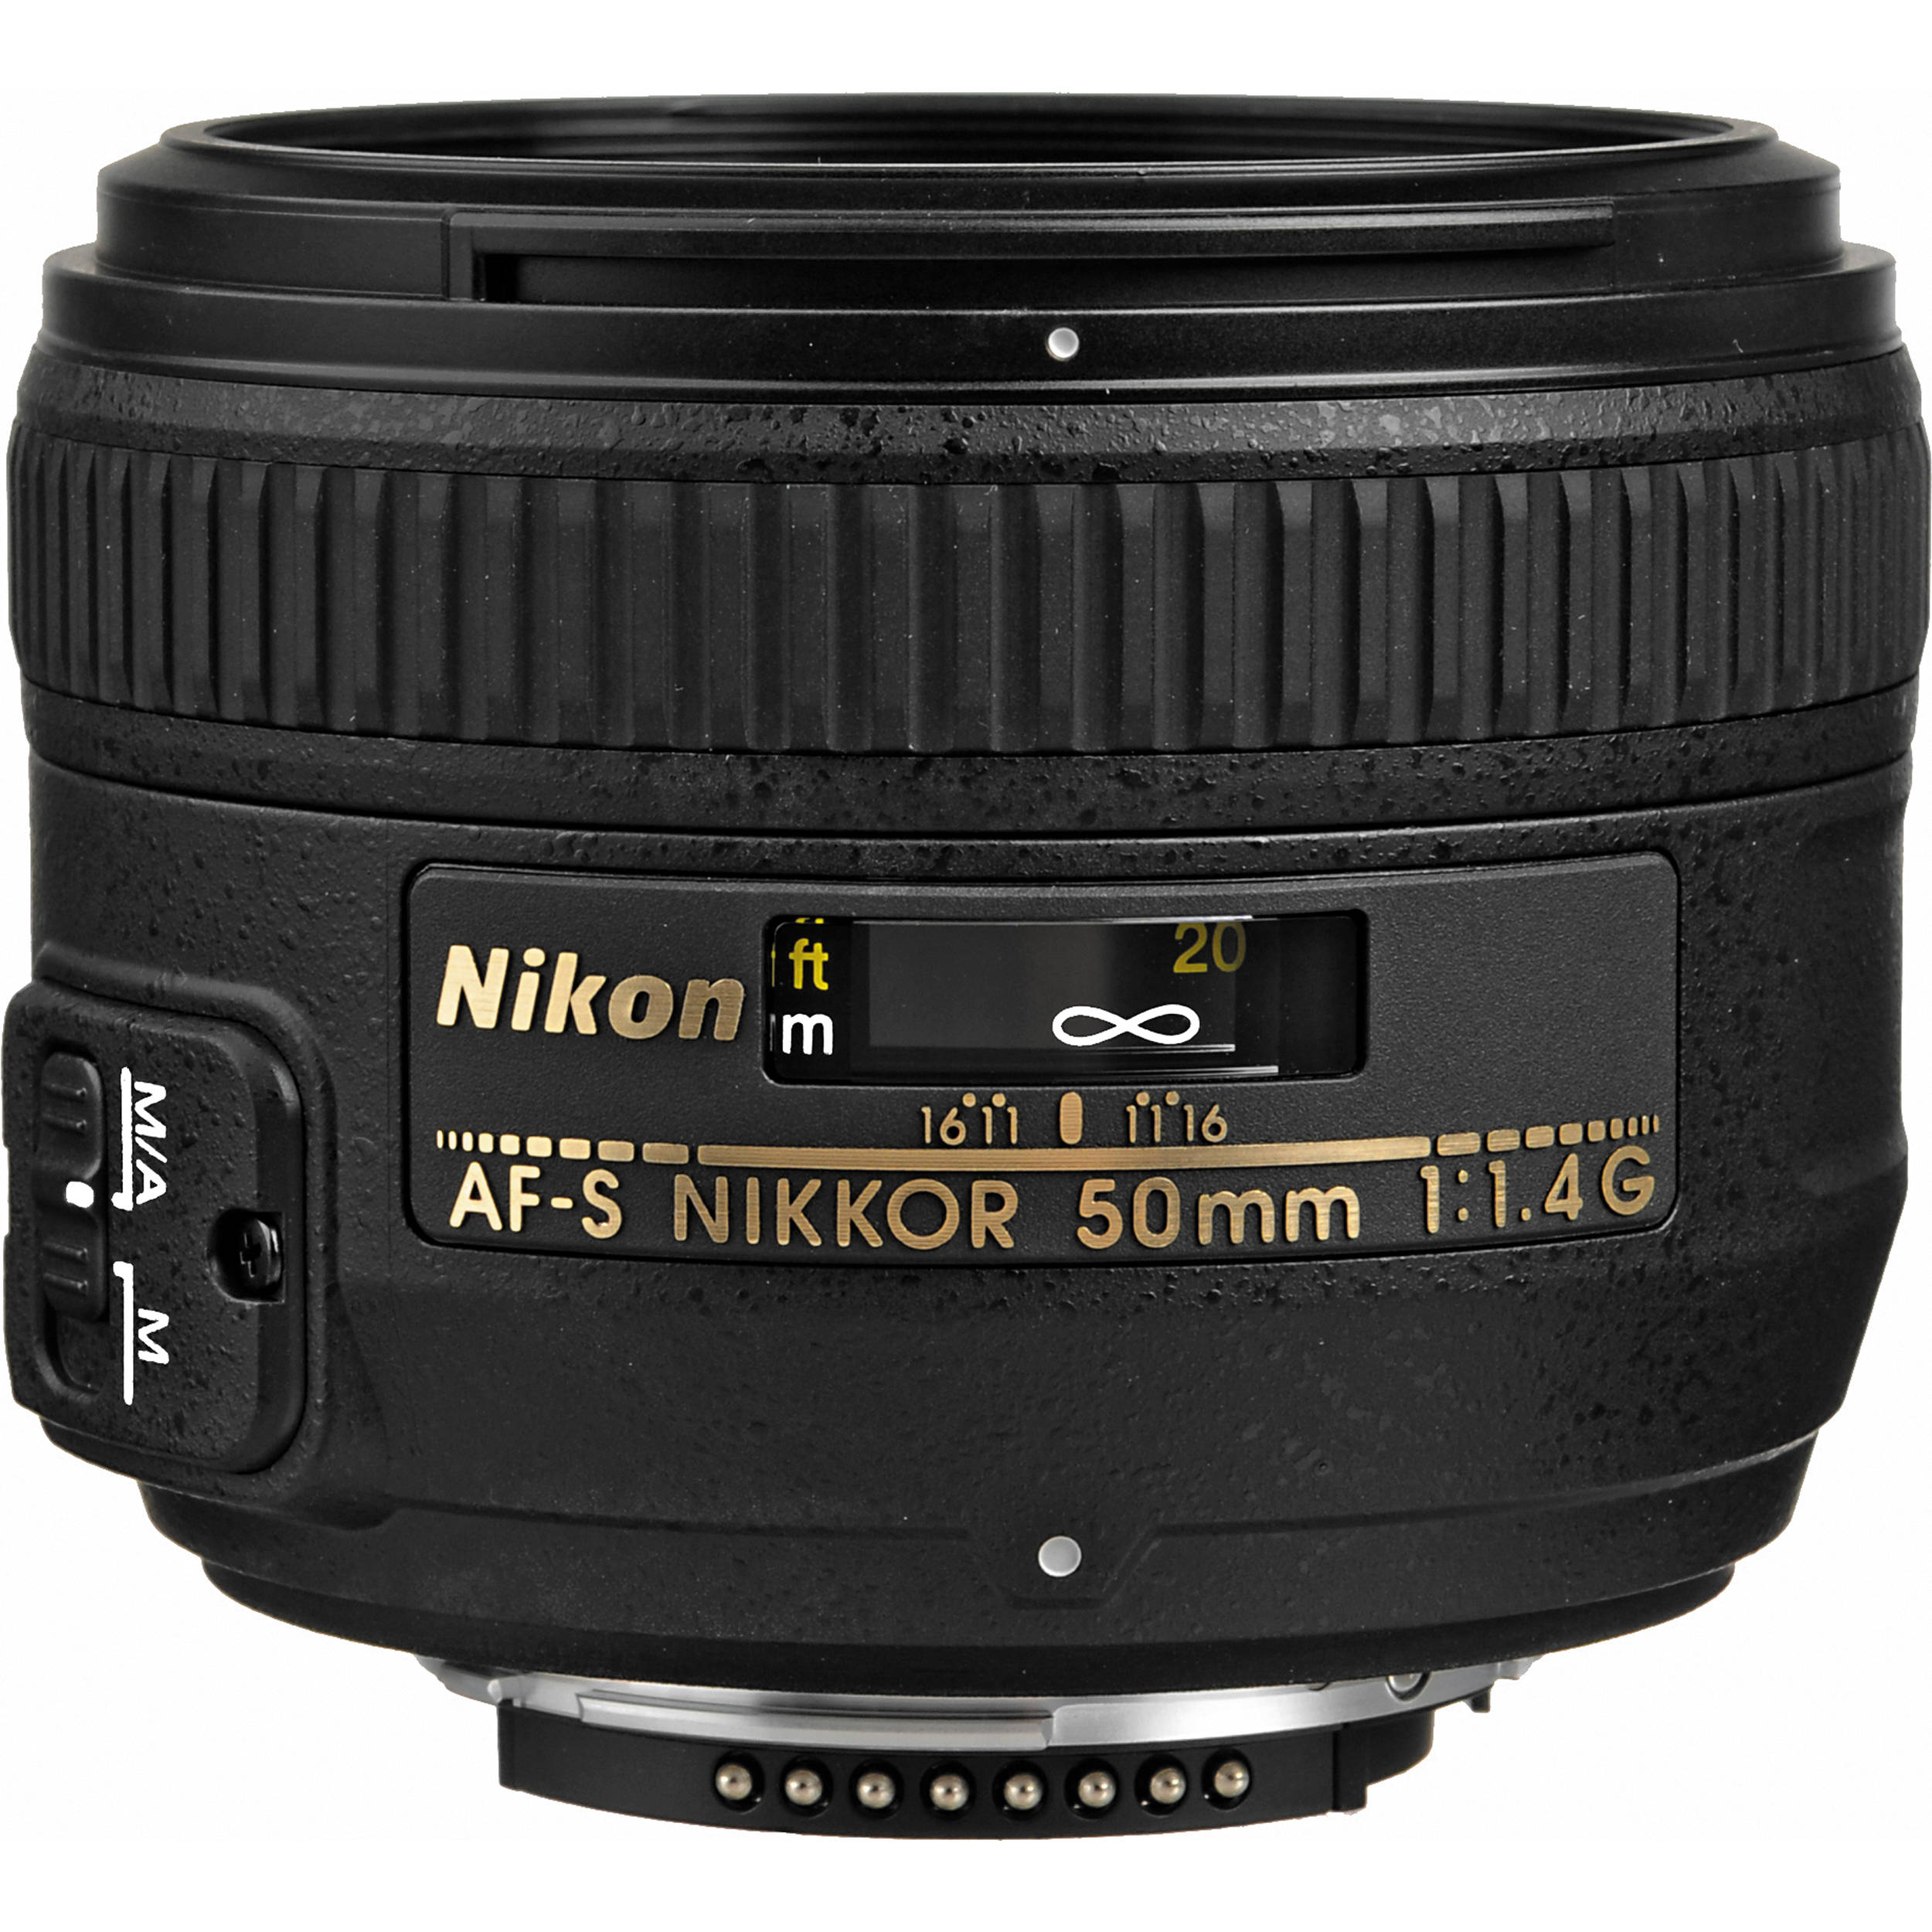 Nikon AF-S 50mm f1.4 - This is my go to lens for my photography! It is beautiful for portraits and family photos. This lens has a beautiful blurred effect since it is a 1.4! I do not use this on my personal instagram because I like to give that a fun and in-the-moment feel. This lens makes photos look EXTREMELY proffesional. Any of you aspiring photogs out there... you NEED this lens! And best part... you can get for around $300-$400! Shop it here:Nikon AF-S FX NIKKOR 50mm f/1.4G Lens with Auto Focus for Nikon DSLR Cameras